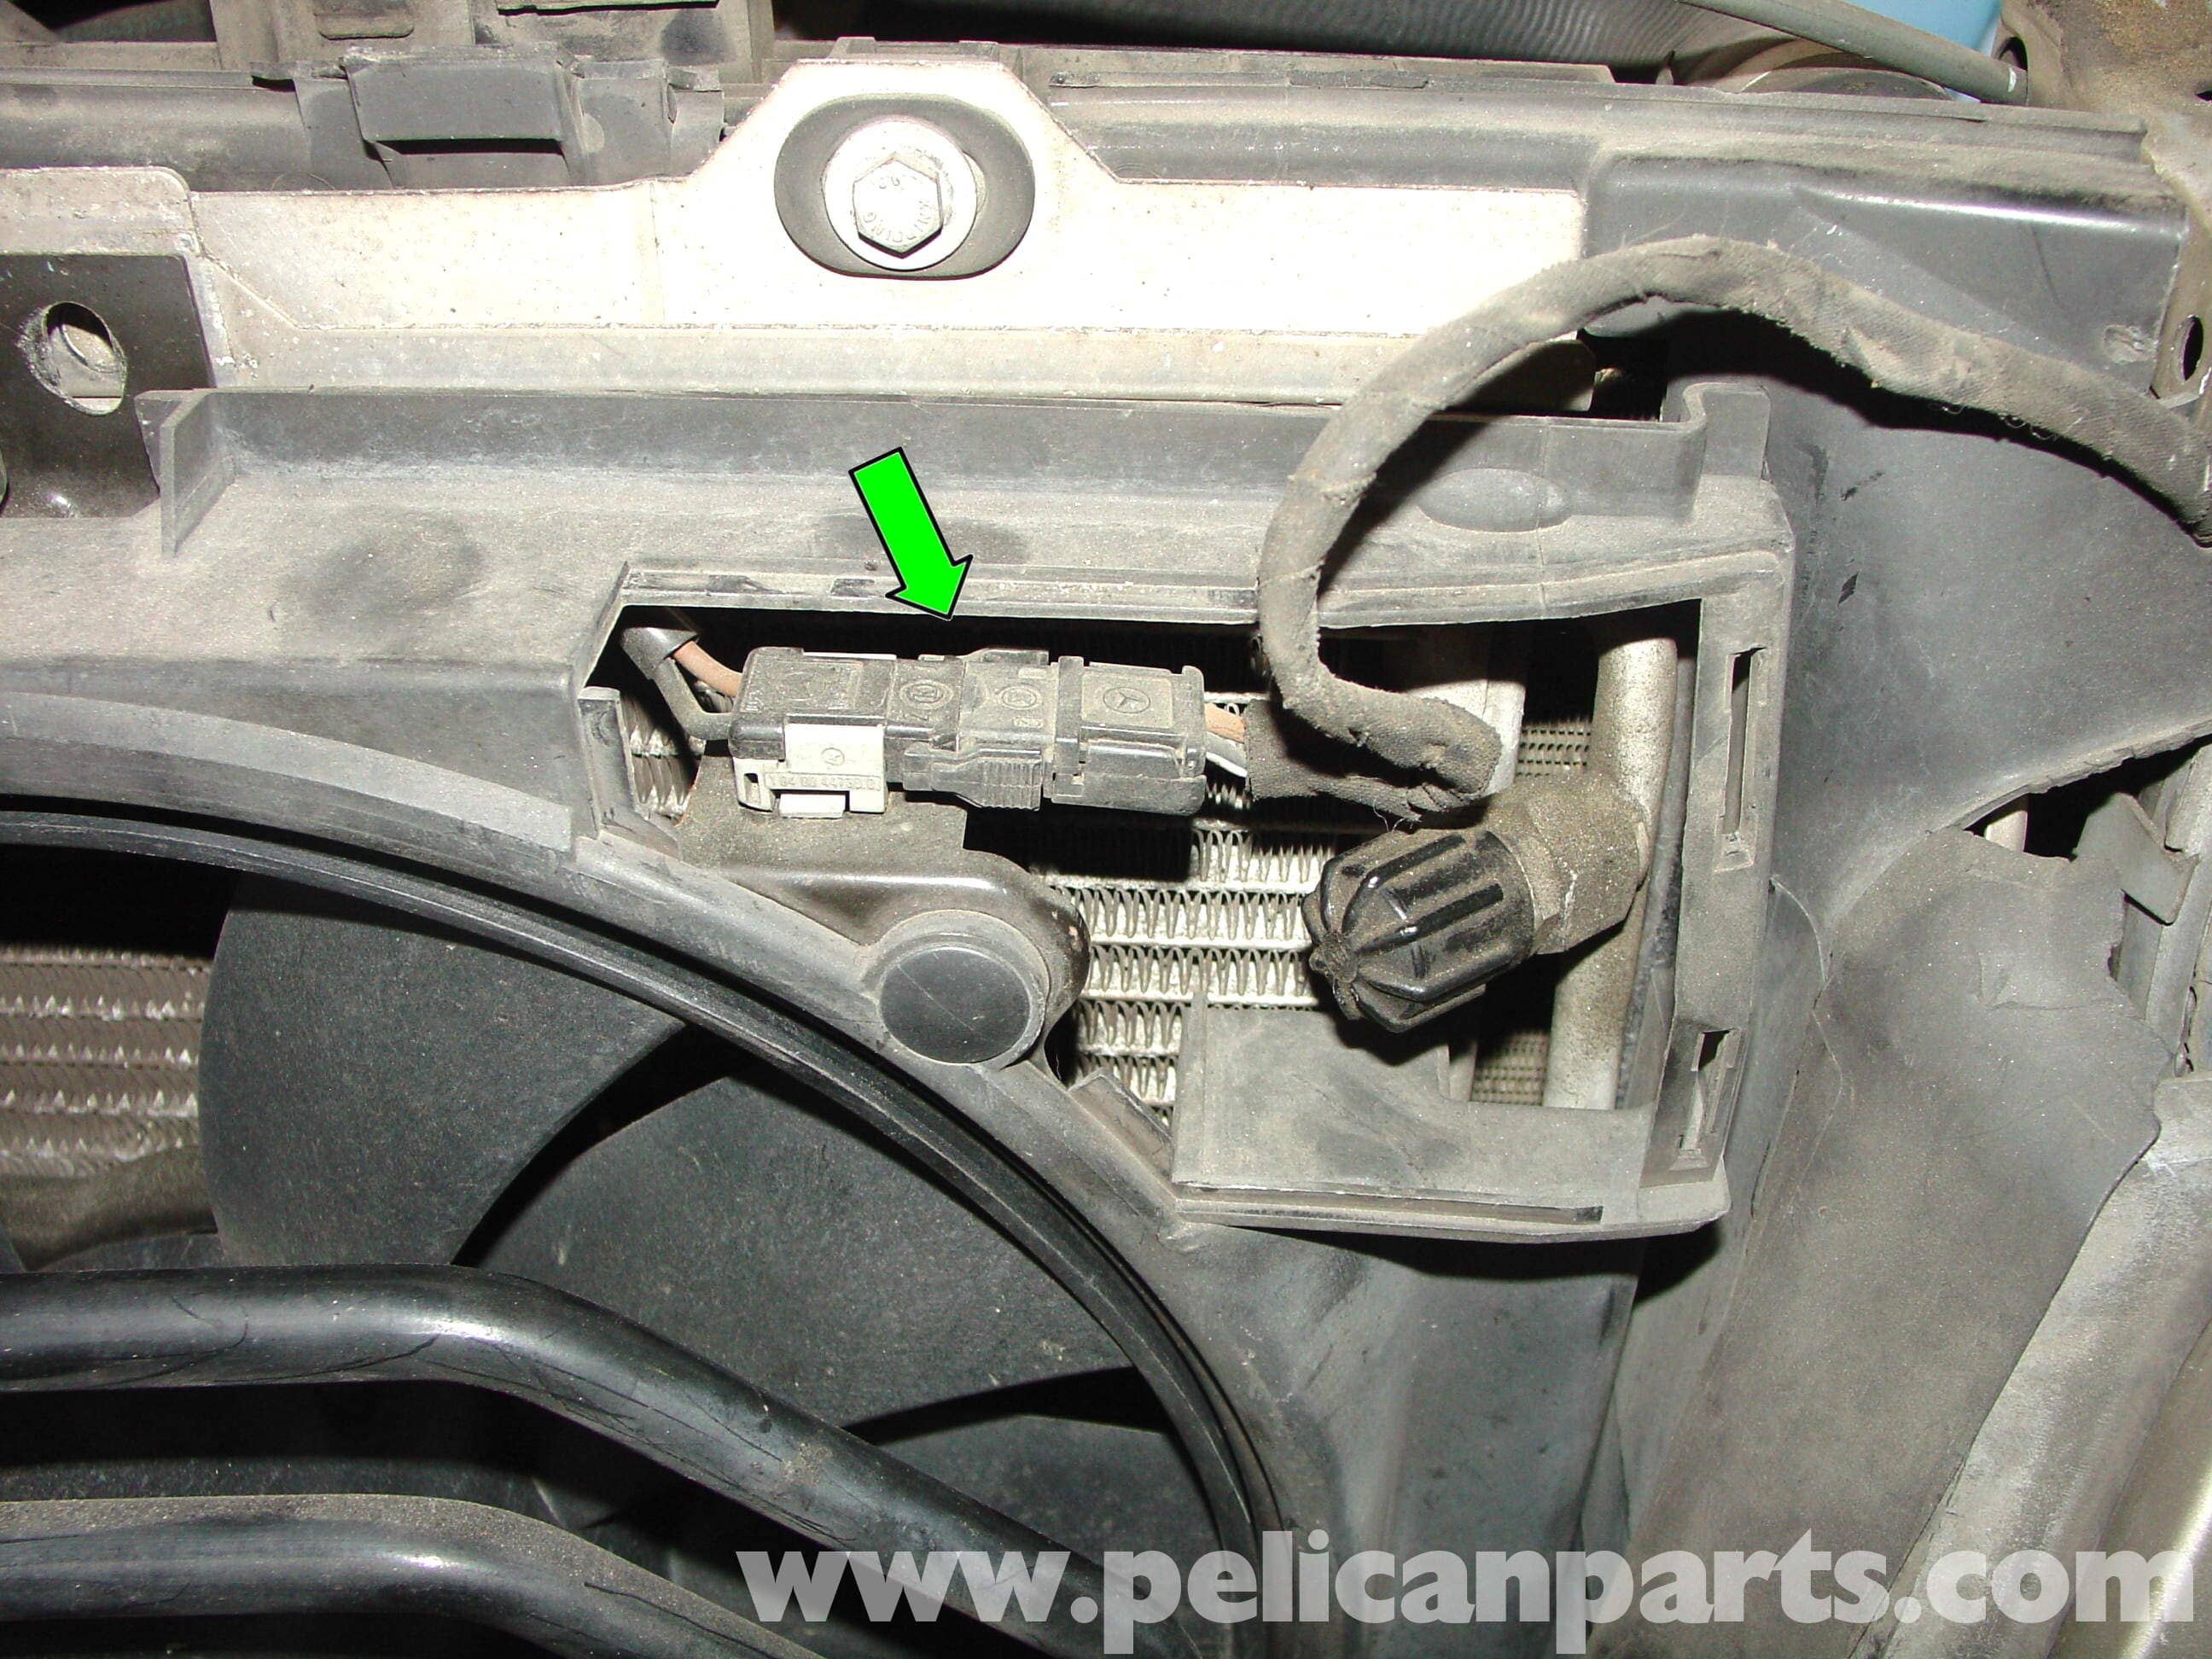 2007 Mercedes C230 Engine Diagram Wiring Library W210 Fuse Box Benz Auxiliary Cooling Fan Belt Replacement 1996 03 Rh Pelicanparts Parts